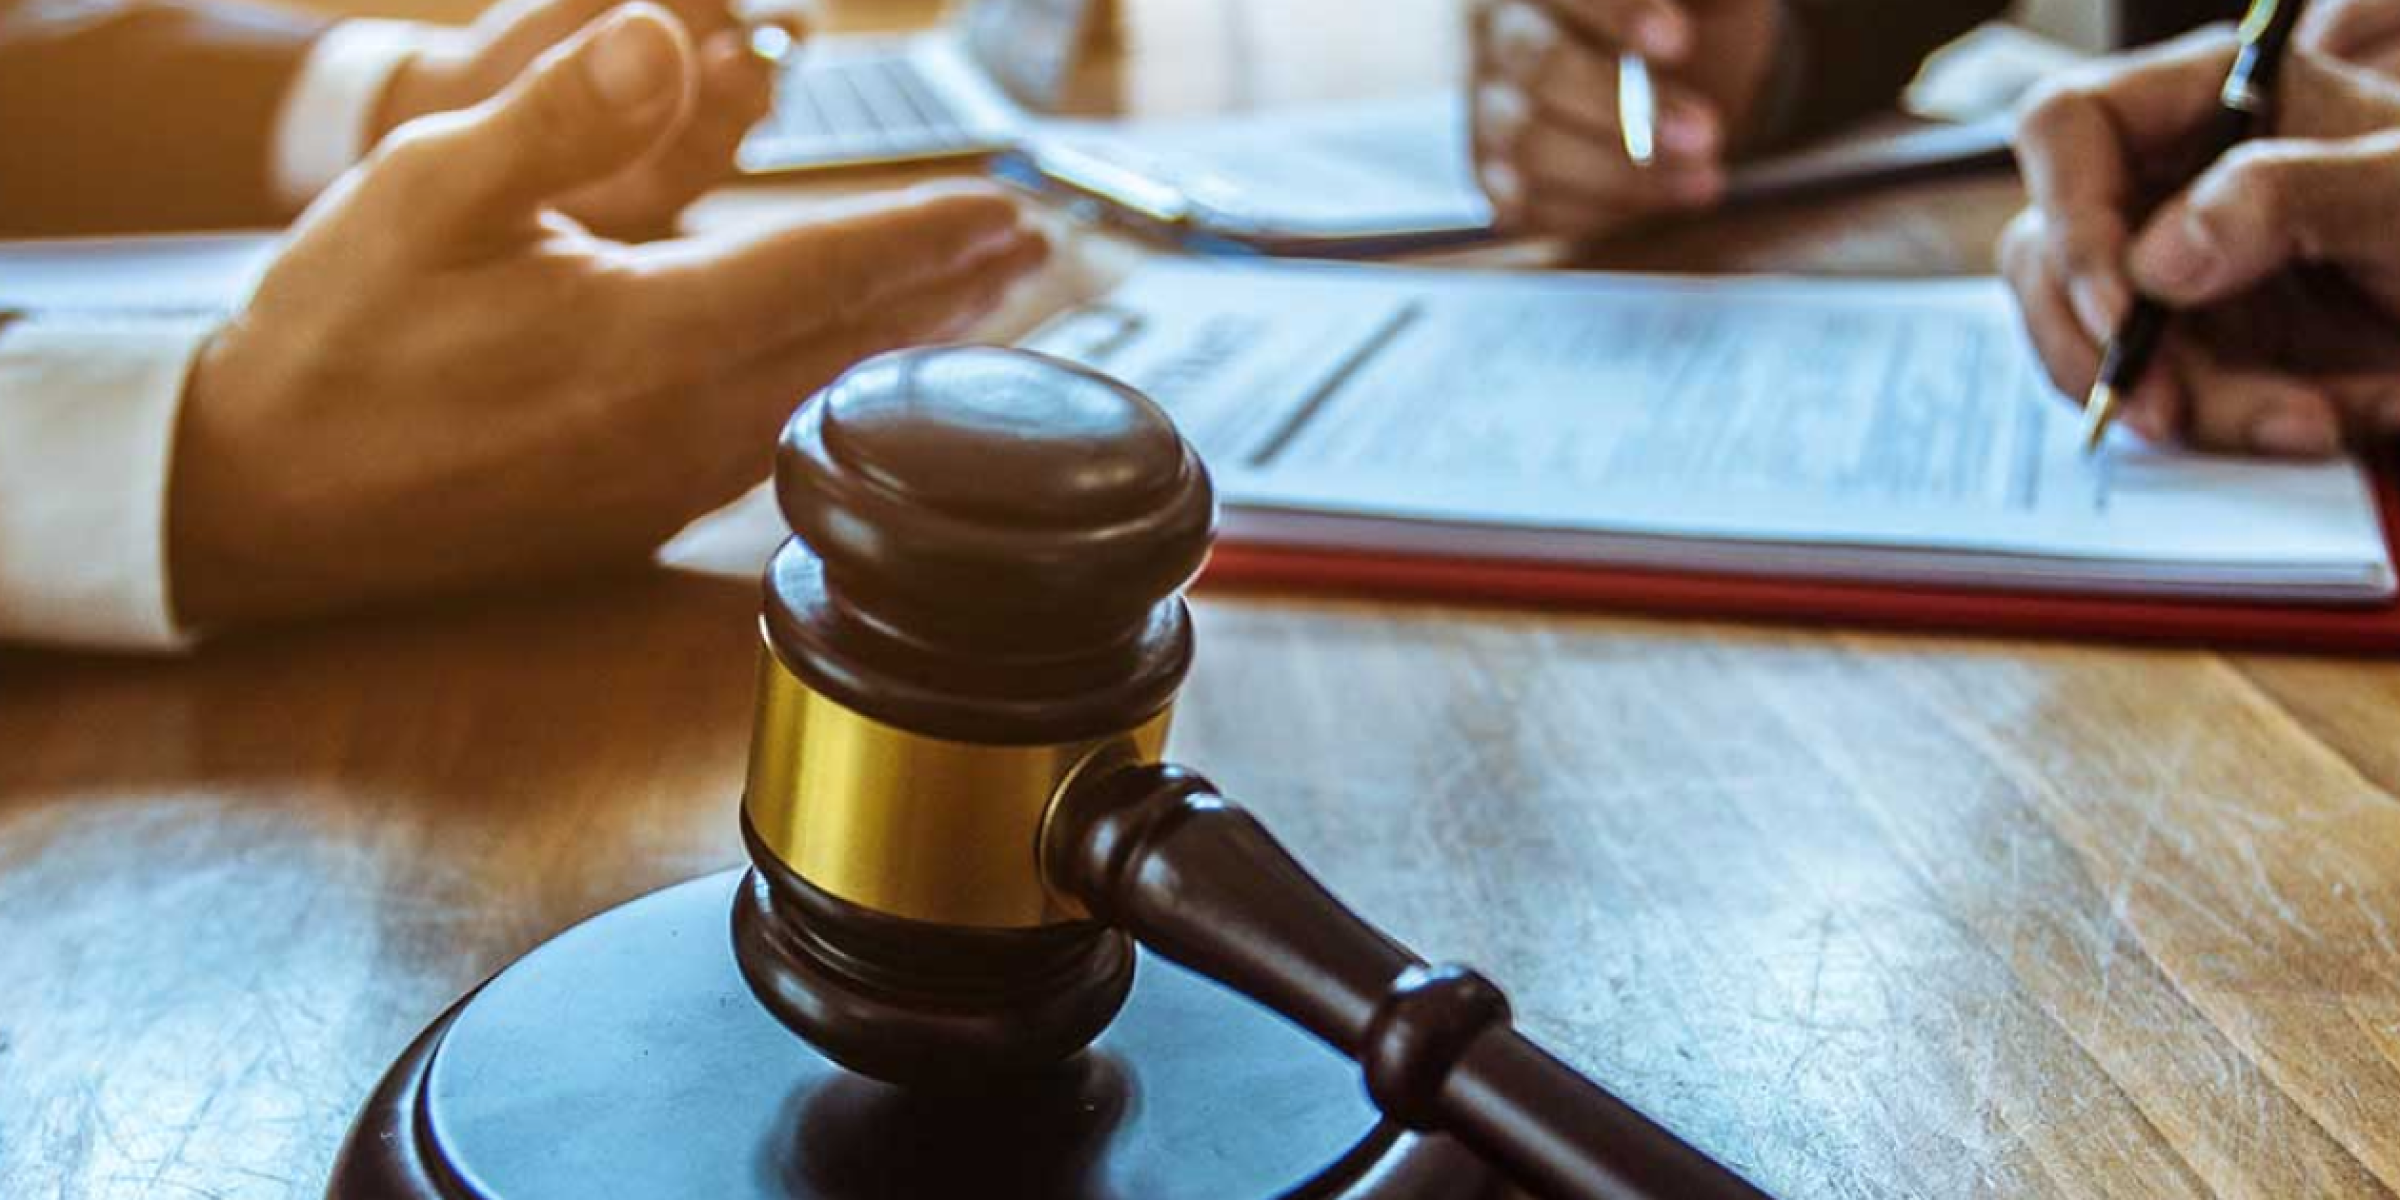 6 Reasons to Find an Expert Witness with AppearMe